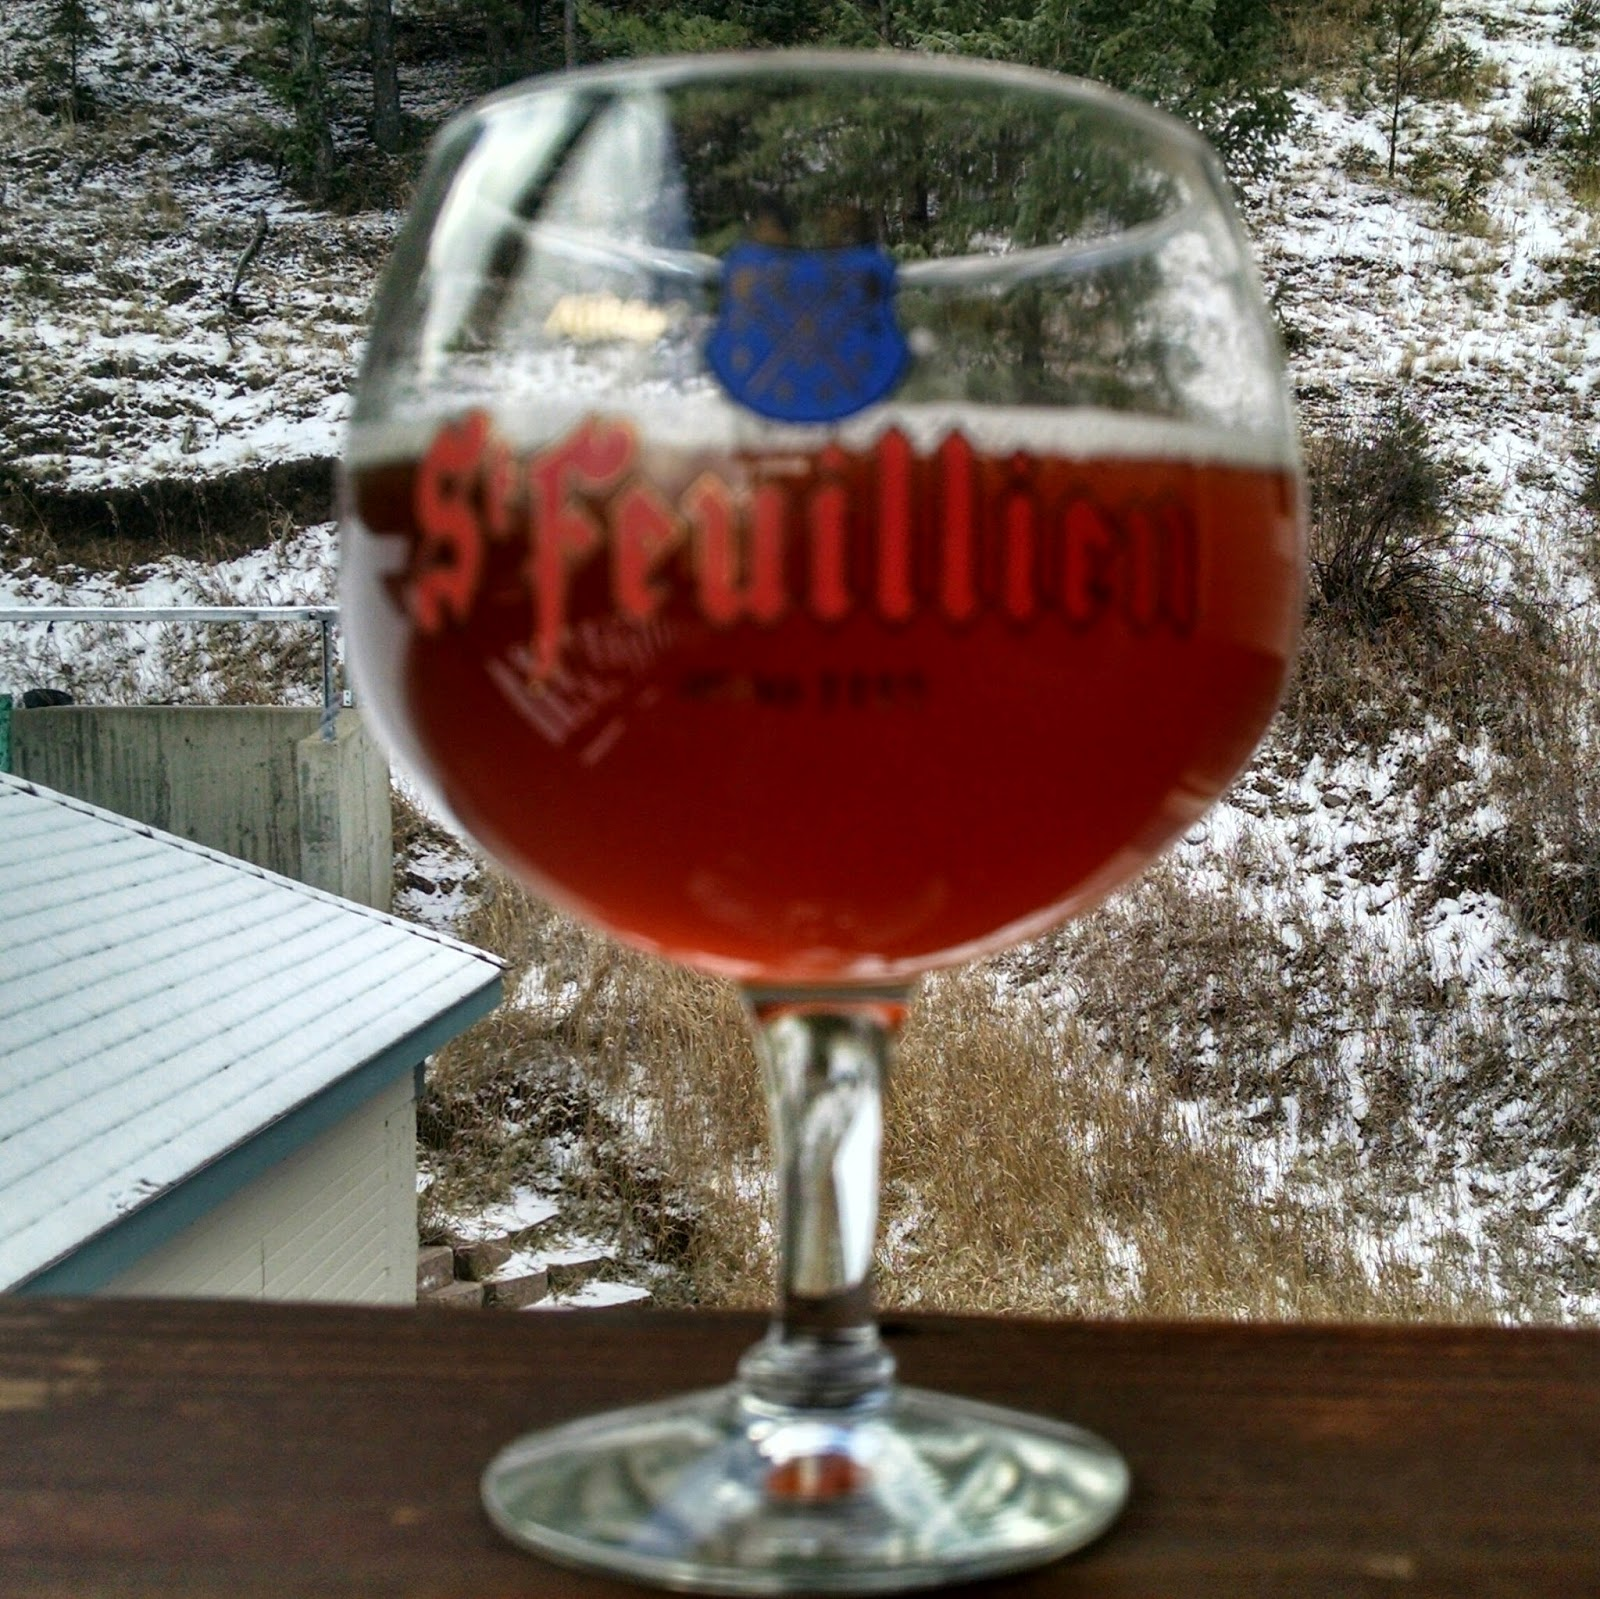 red chair nwpa clone good desk chairs in the fermentor cloning northwest pale ale colorado dec